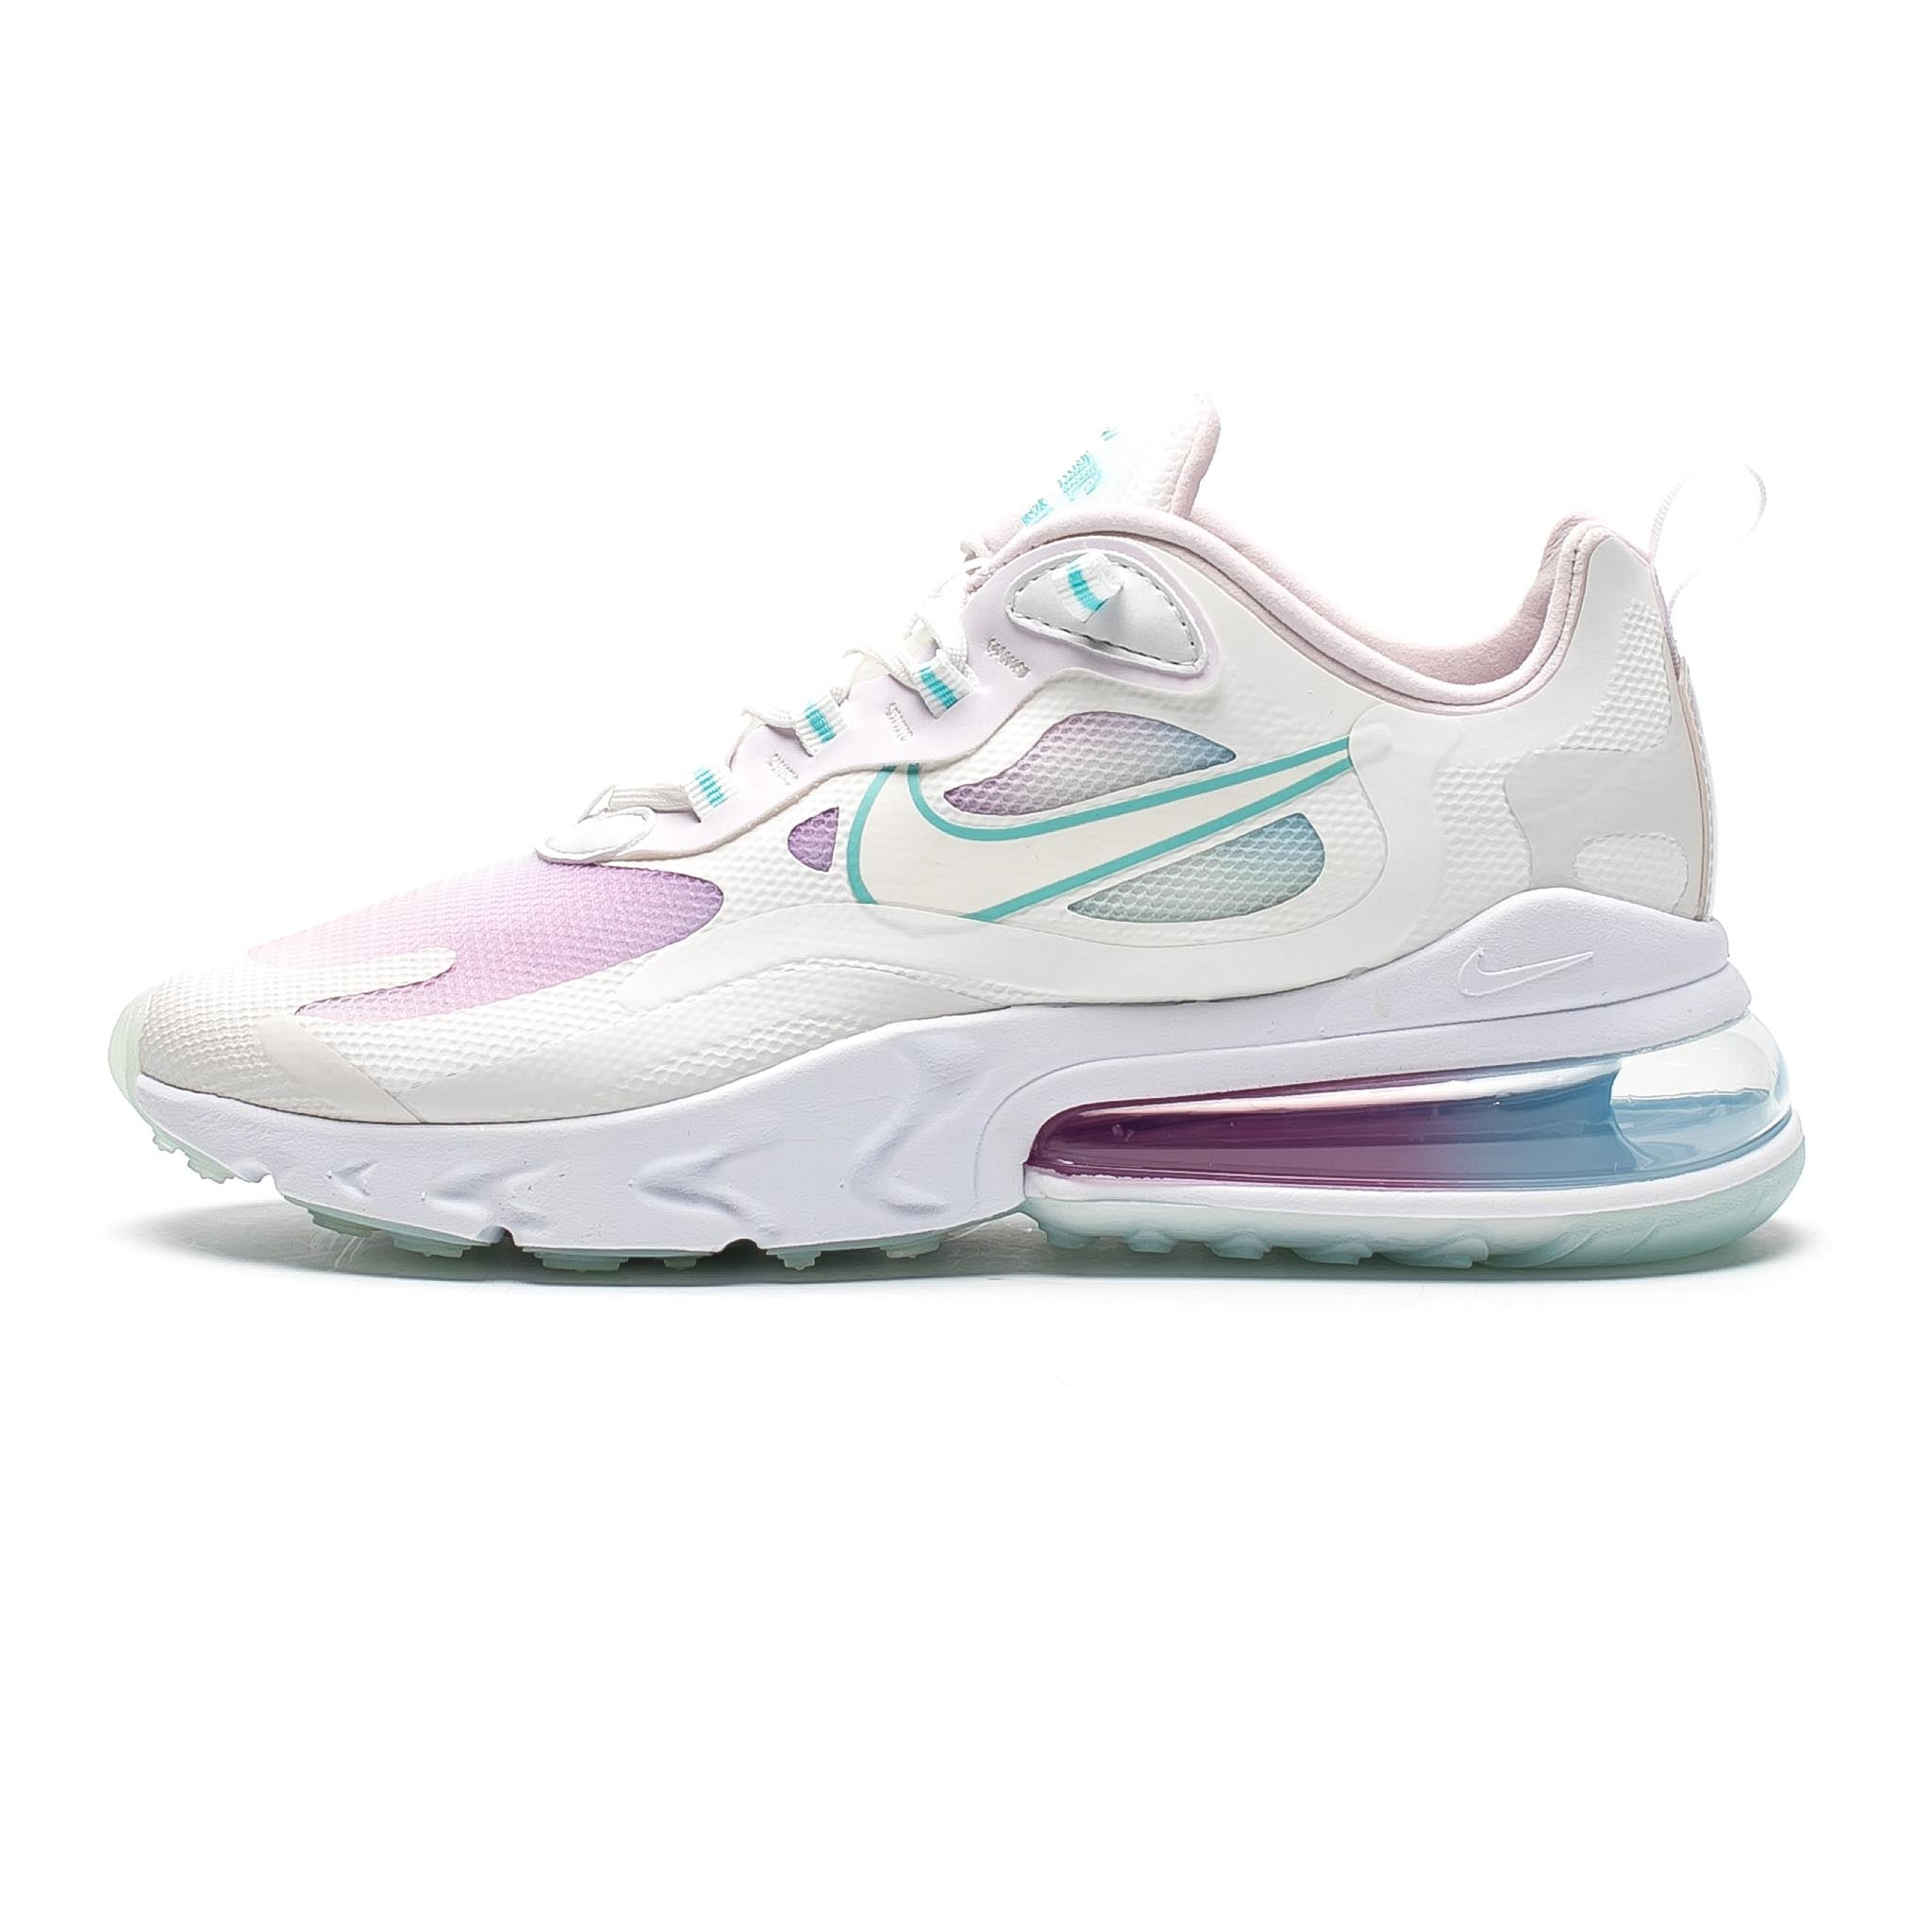 Nike Air Max 270 React SE 'Light Gradient'